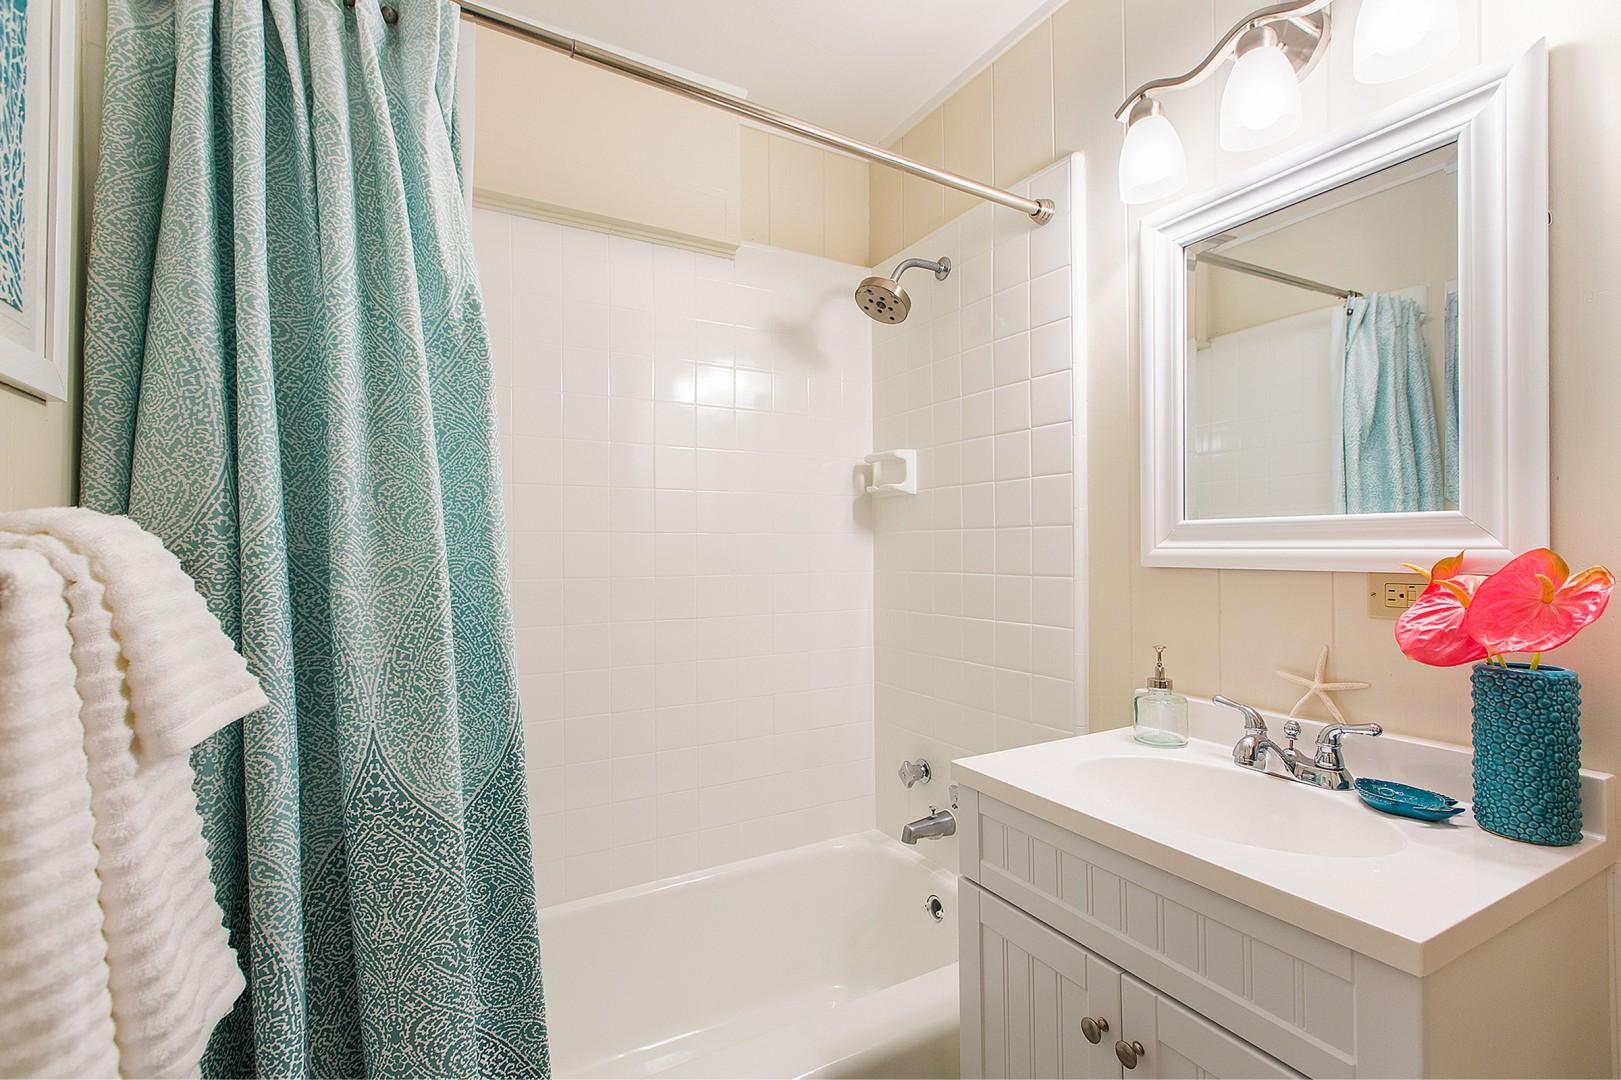 Hall bathroom for master and twin bedroom.